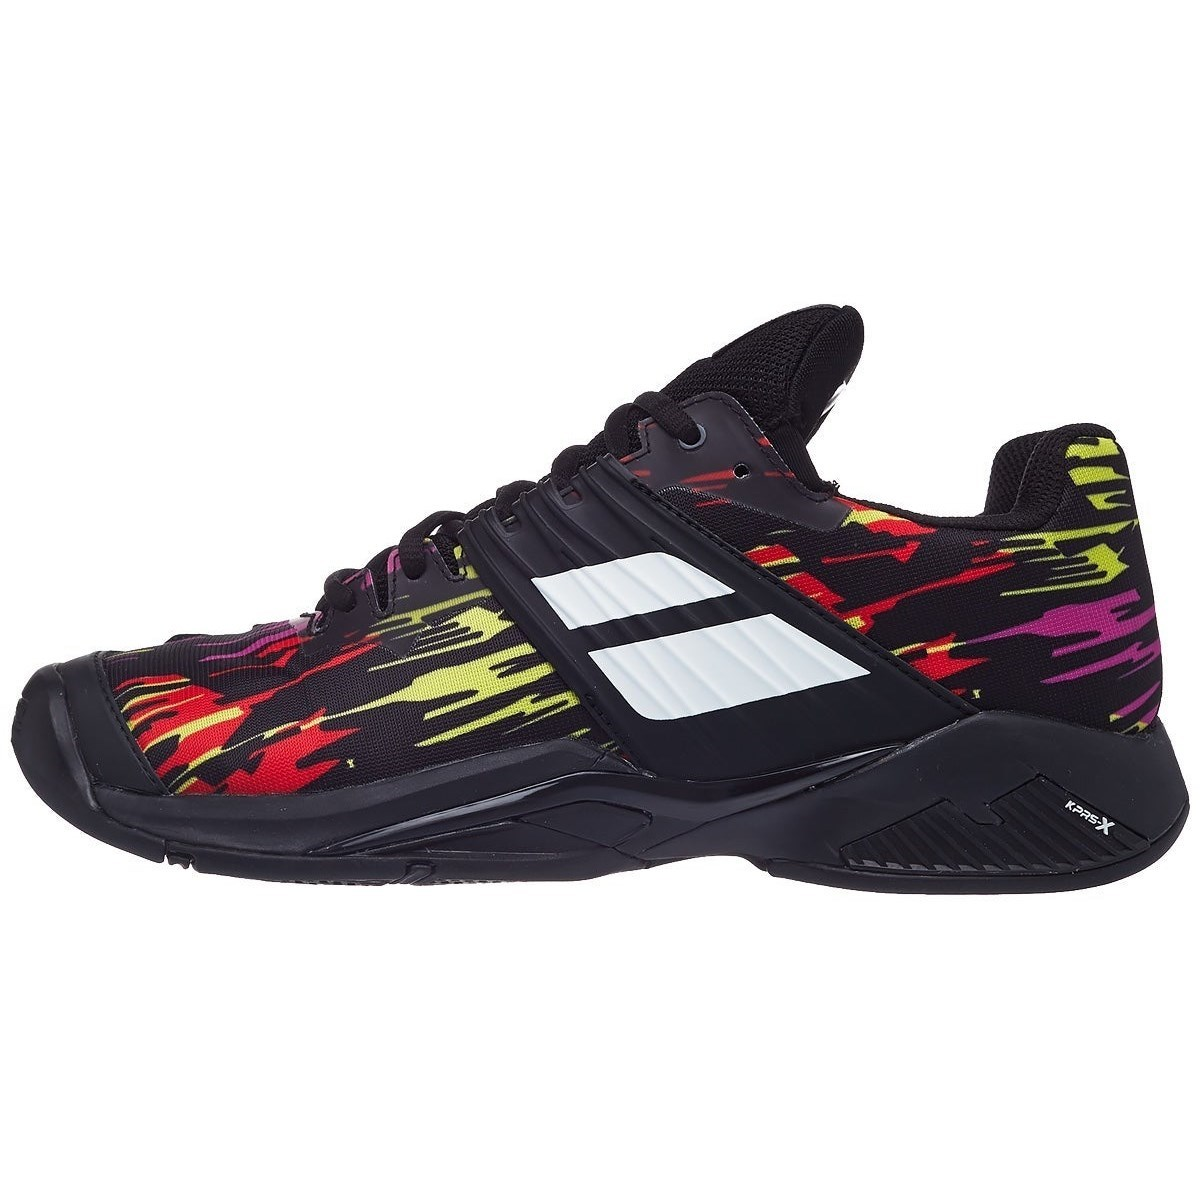 Babolat Propulse Fury AC Mens Tennis Shoes- Black/White/Red/Yellow